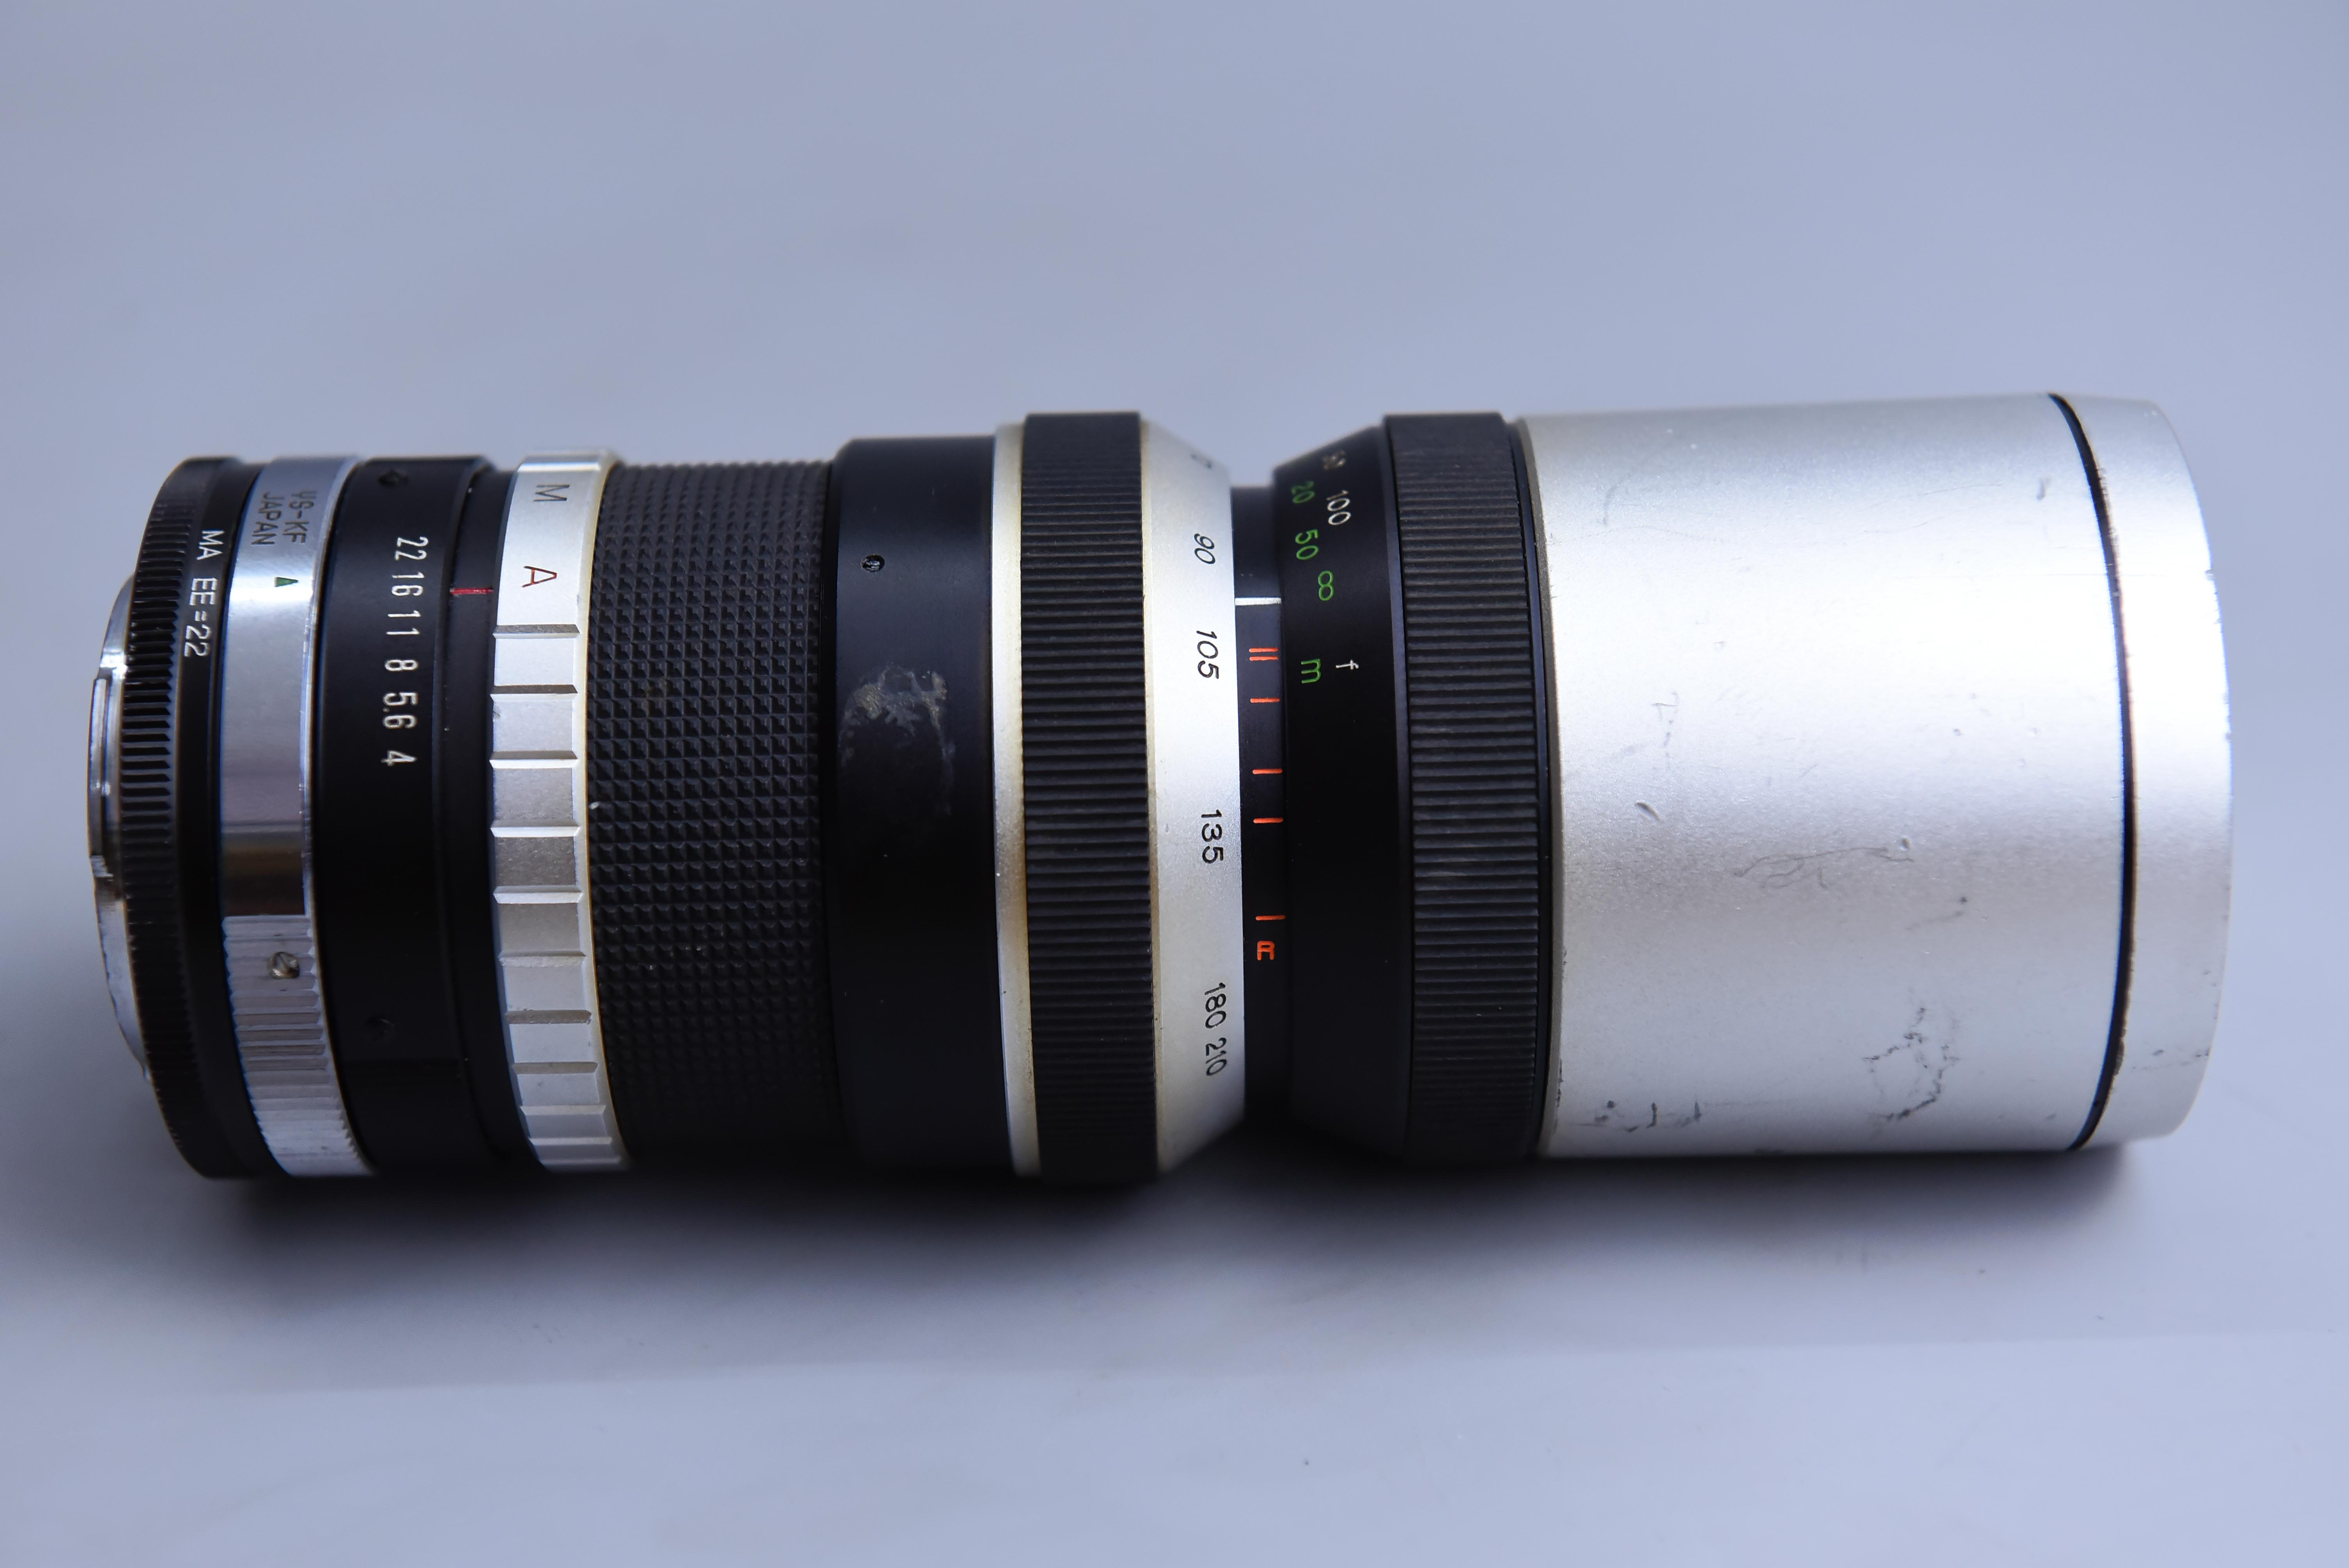 aetna-rokunar-auto-zoom-70-200mm-f4-0-mf-minolta-md-70-210-4-0-10221